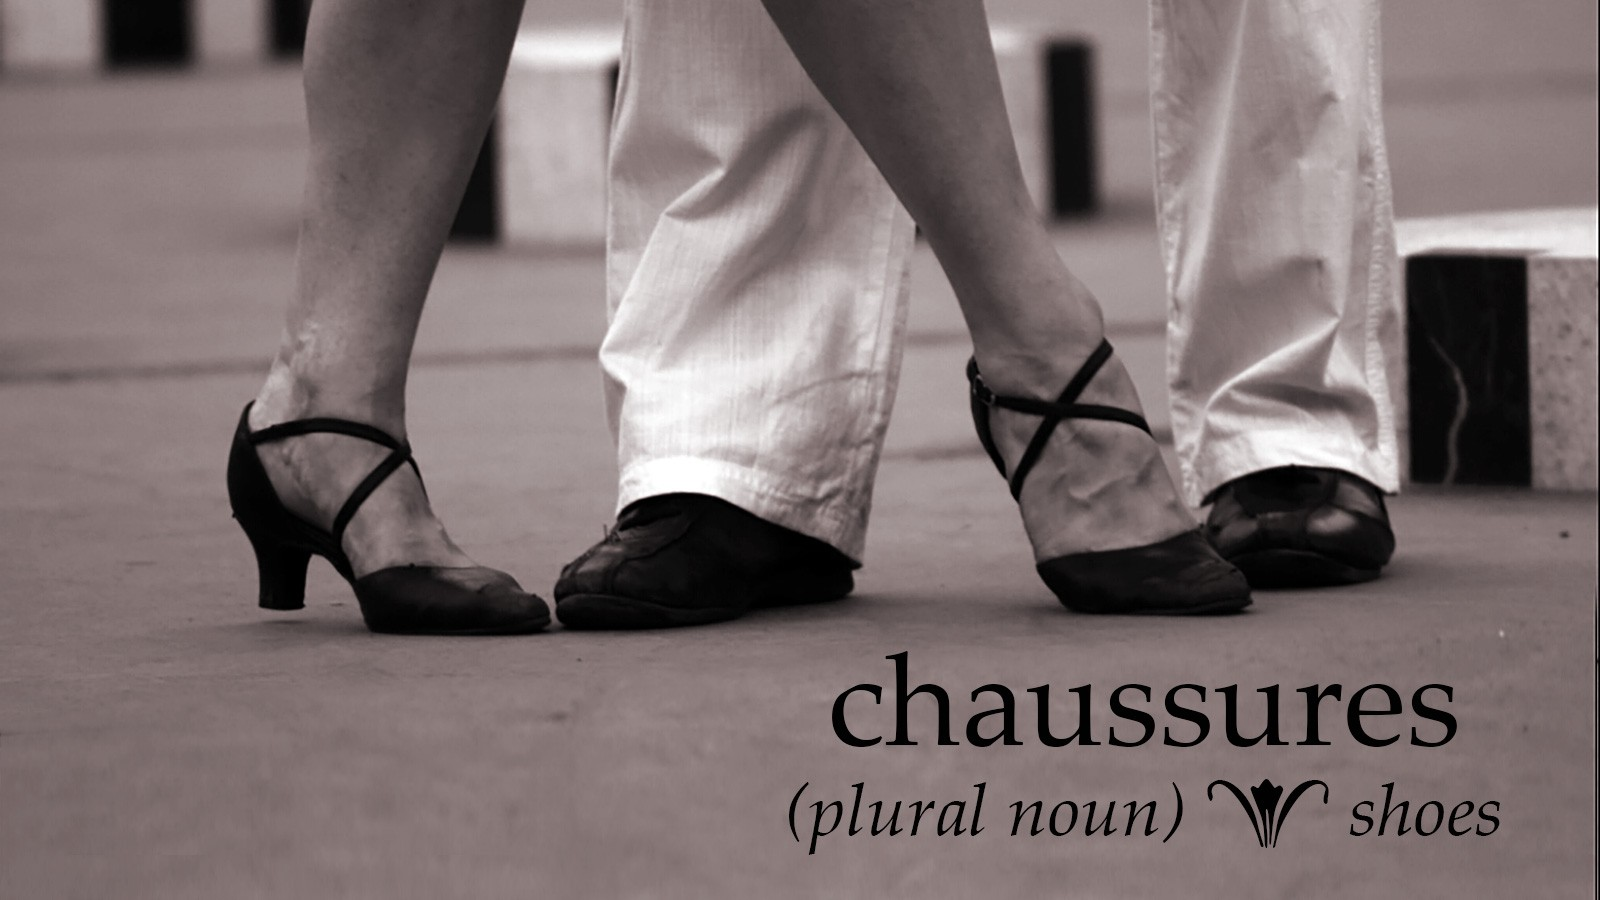 chaussures means shoes in french